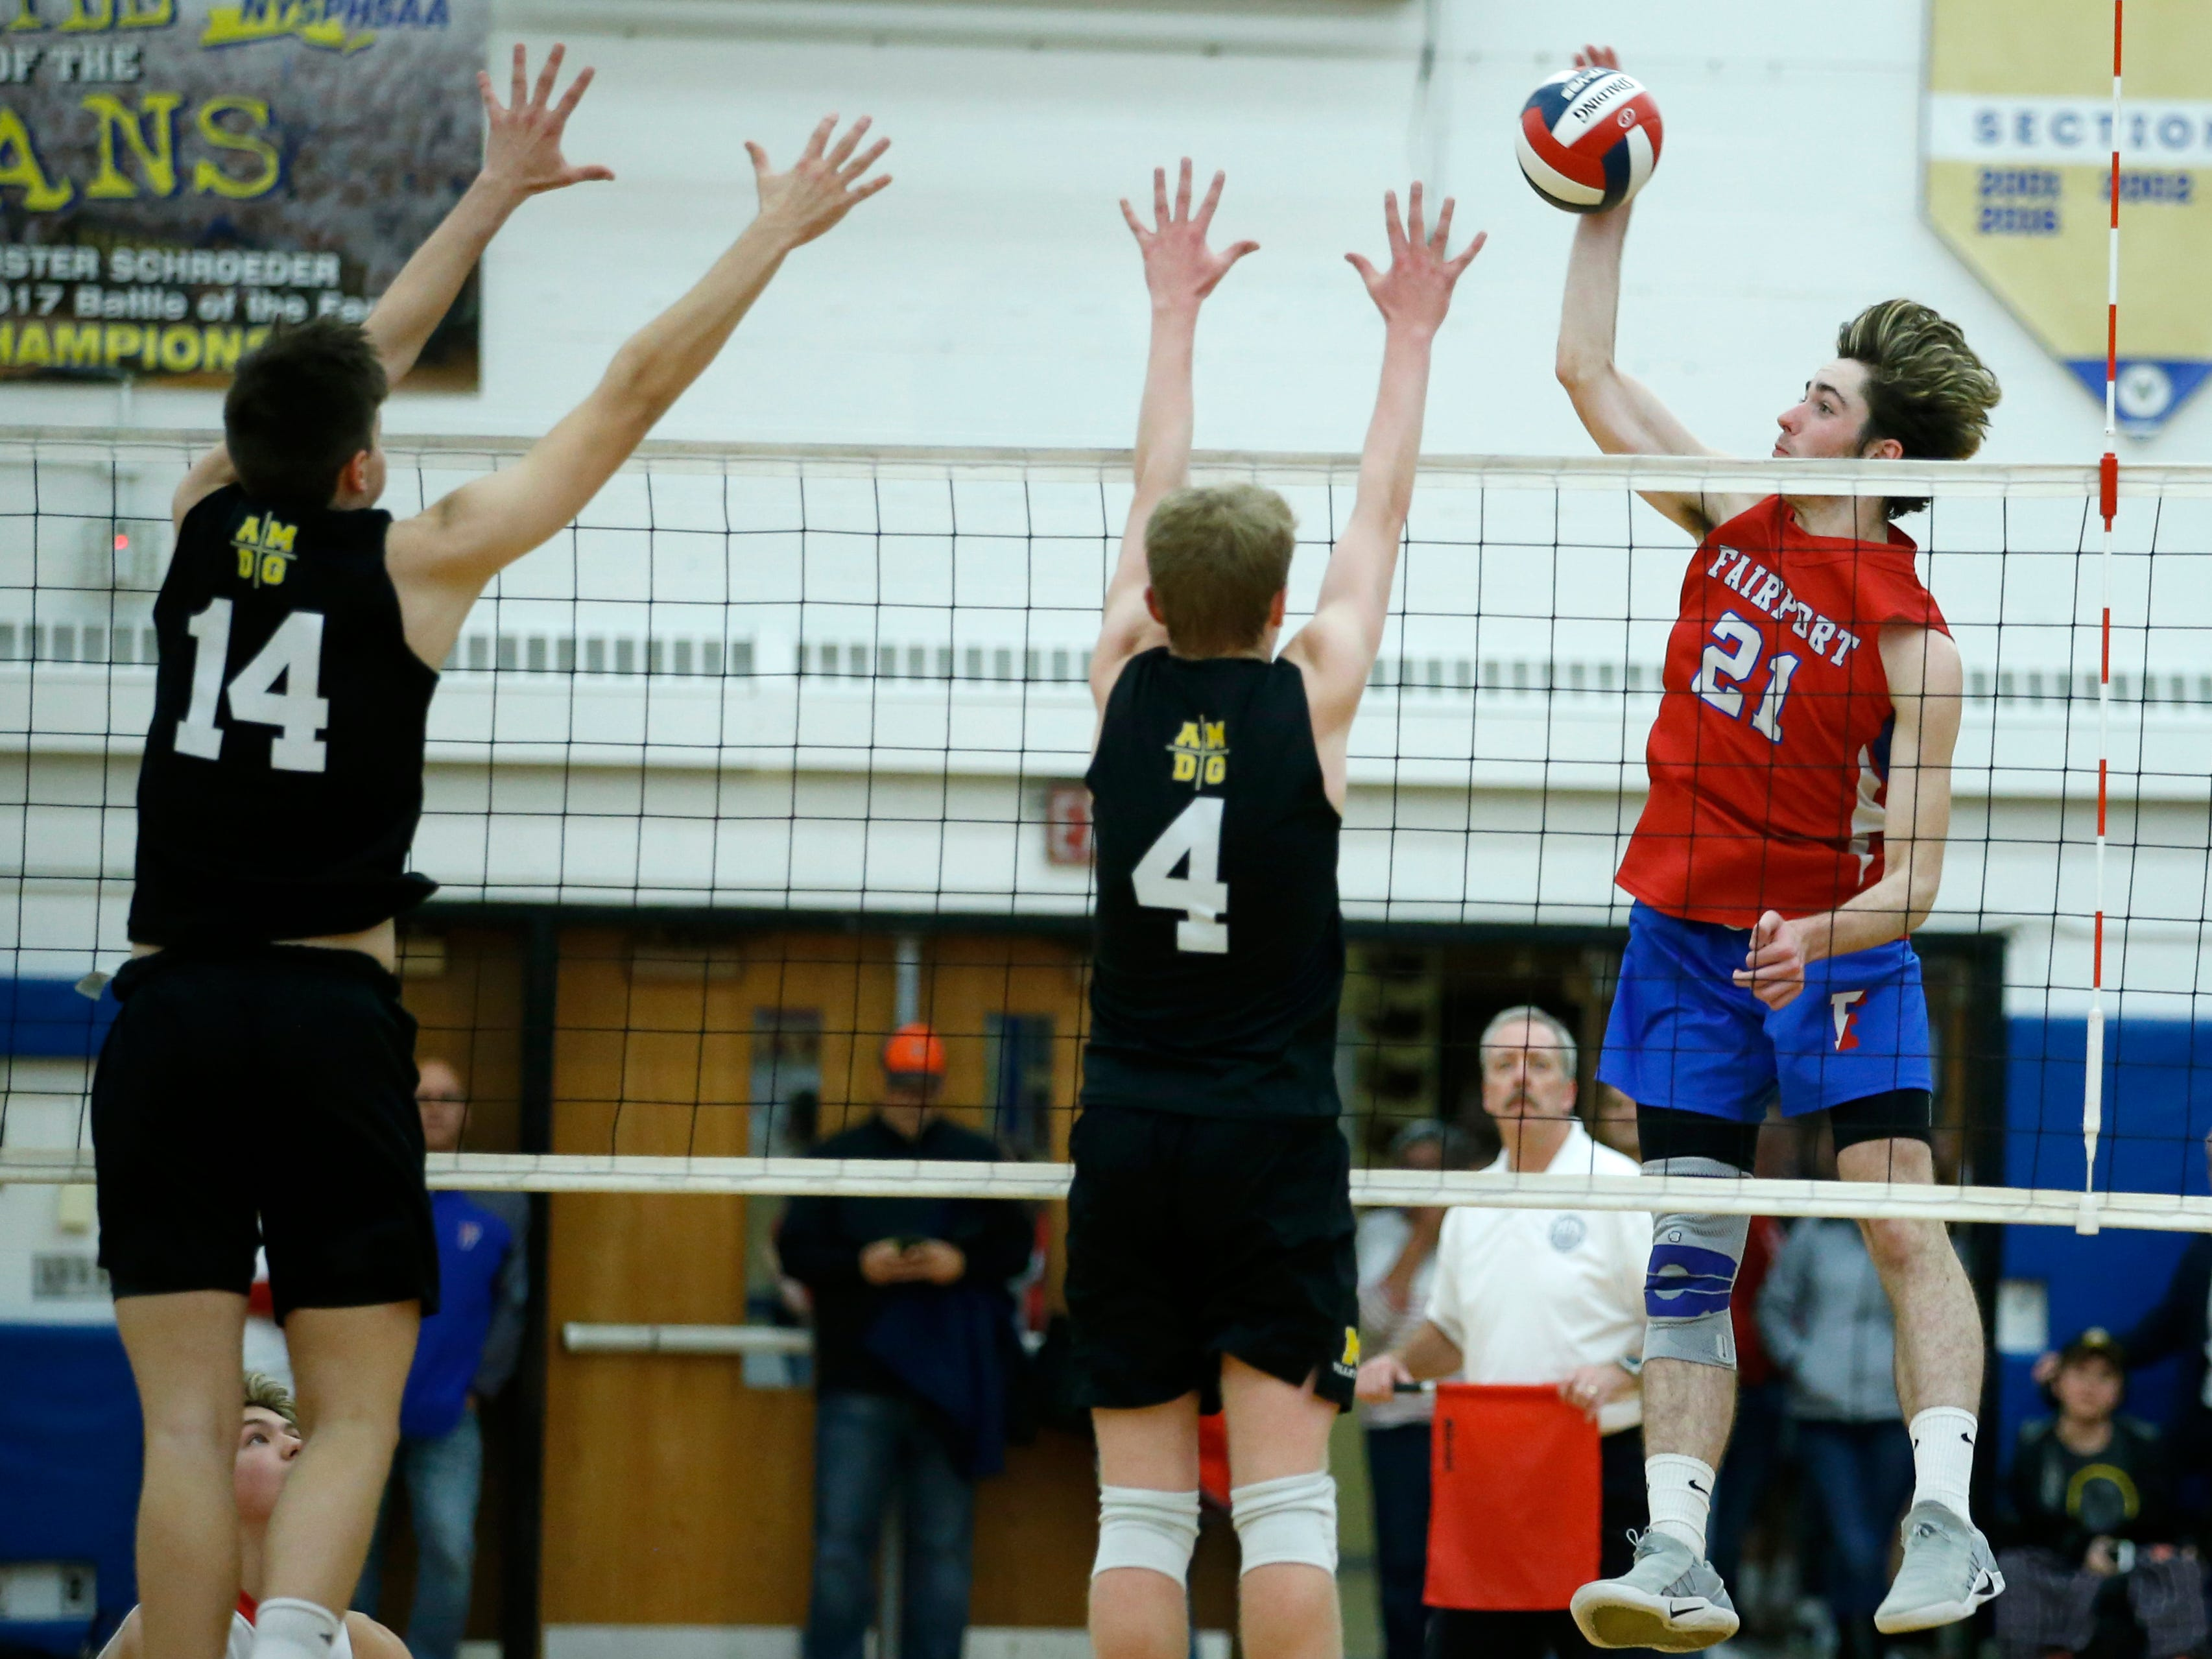 Class A volleyball final: Fairport's Matt Beiter faces a block by McQuaid's Daniel Lynch and Owen Wickens in the second set at Webster Schroeder High School.